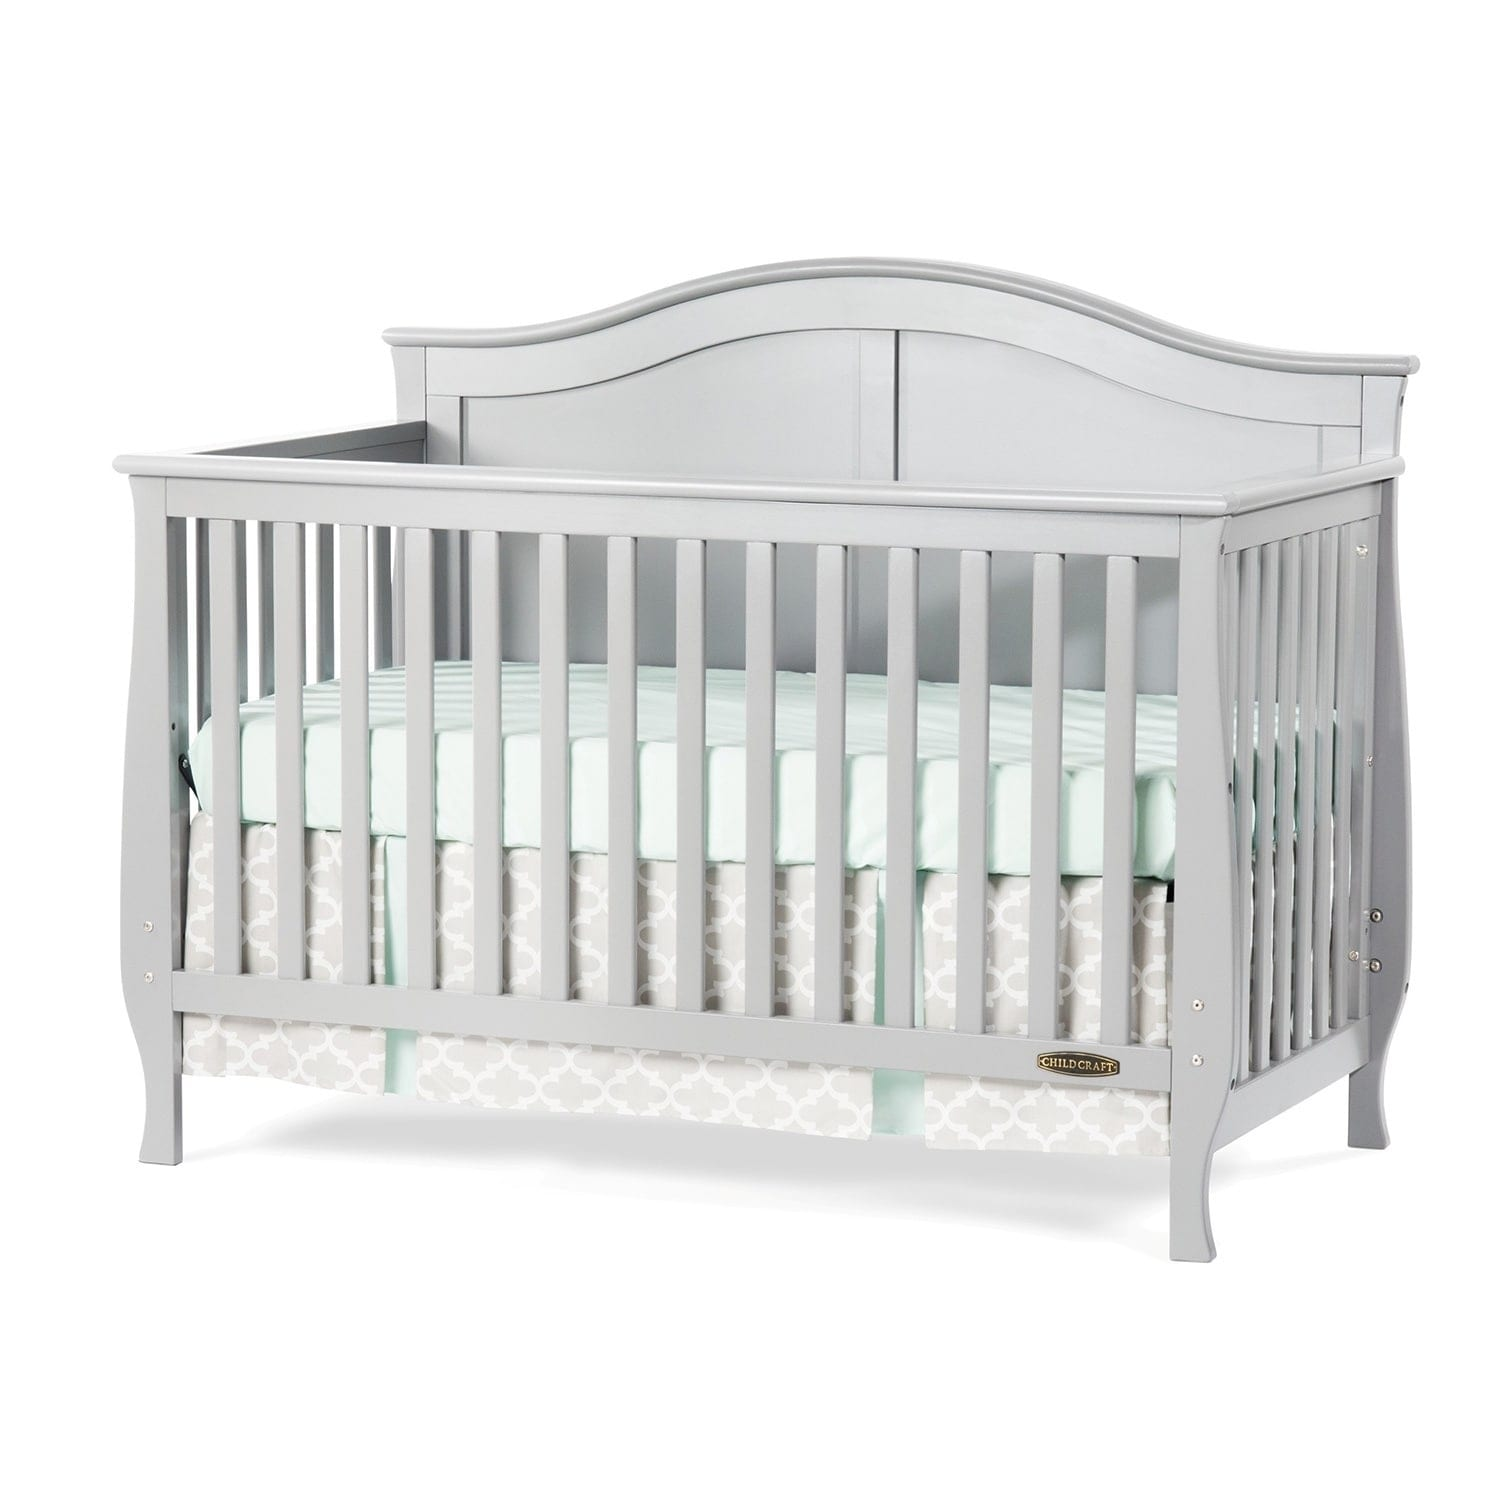 Shop child craft camden 4 in 1 lifetime convertible crib cool gray free shipping today overstock com 10769366